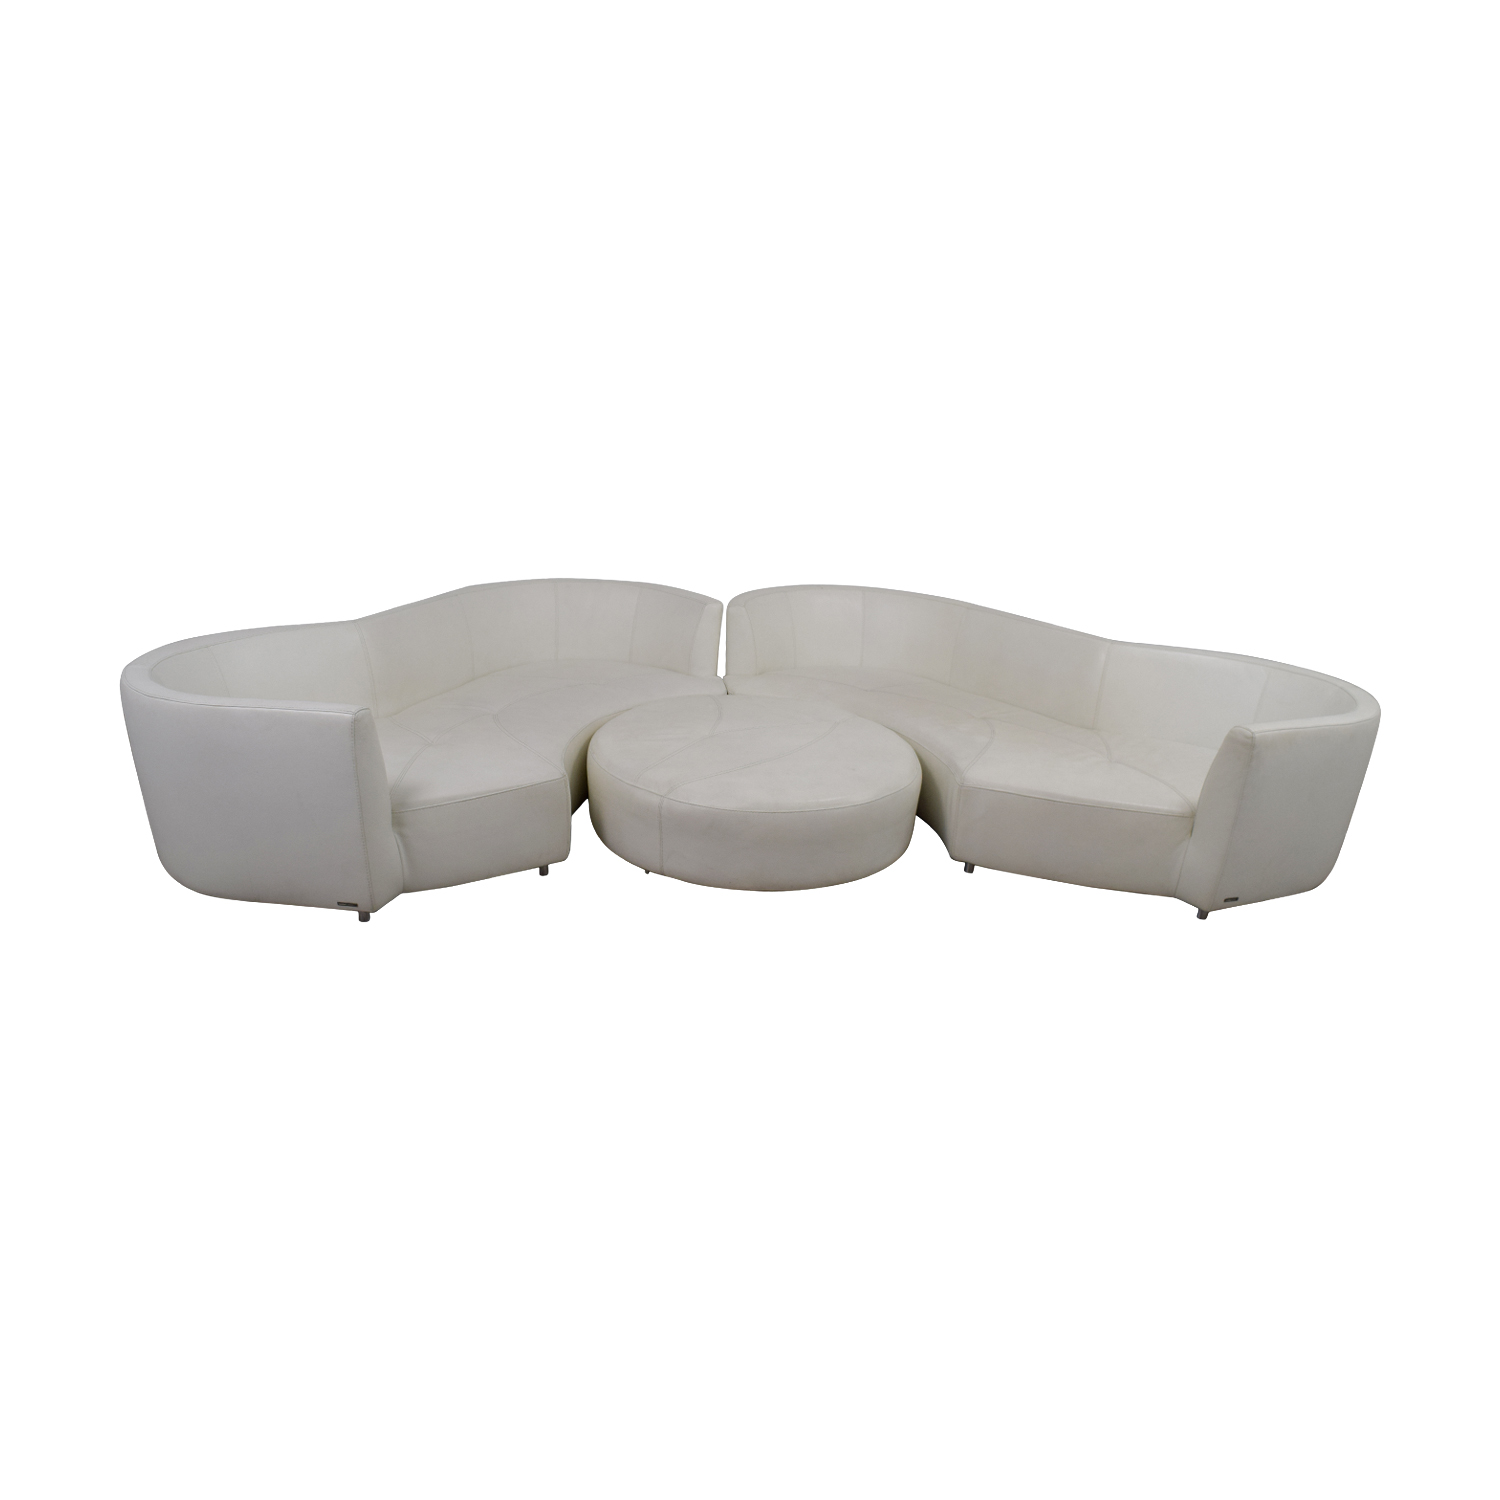 Roche Bobois Roche Bobois White Digital Curved Three-Cushion Sofas with Ottoman nyc